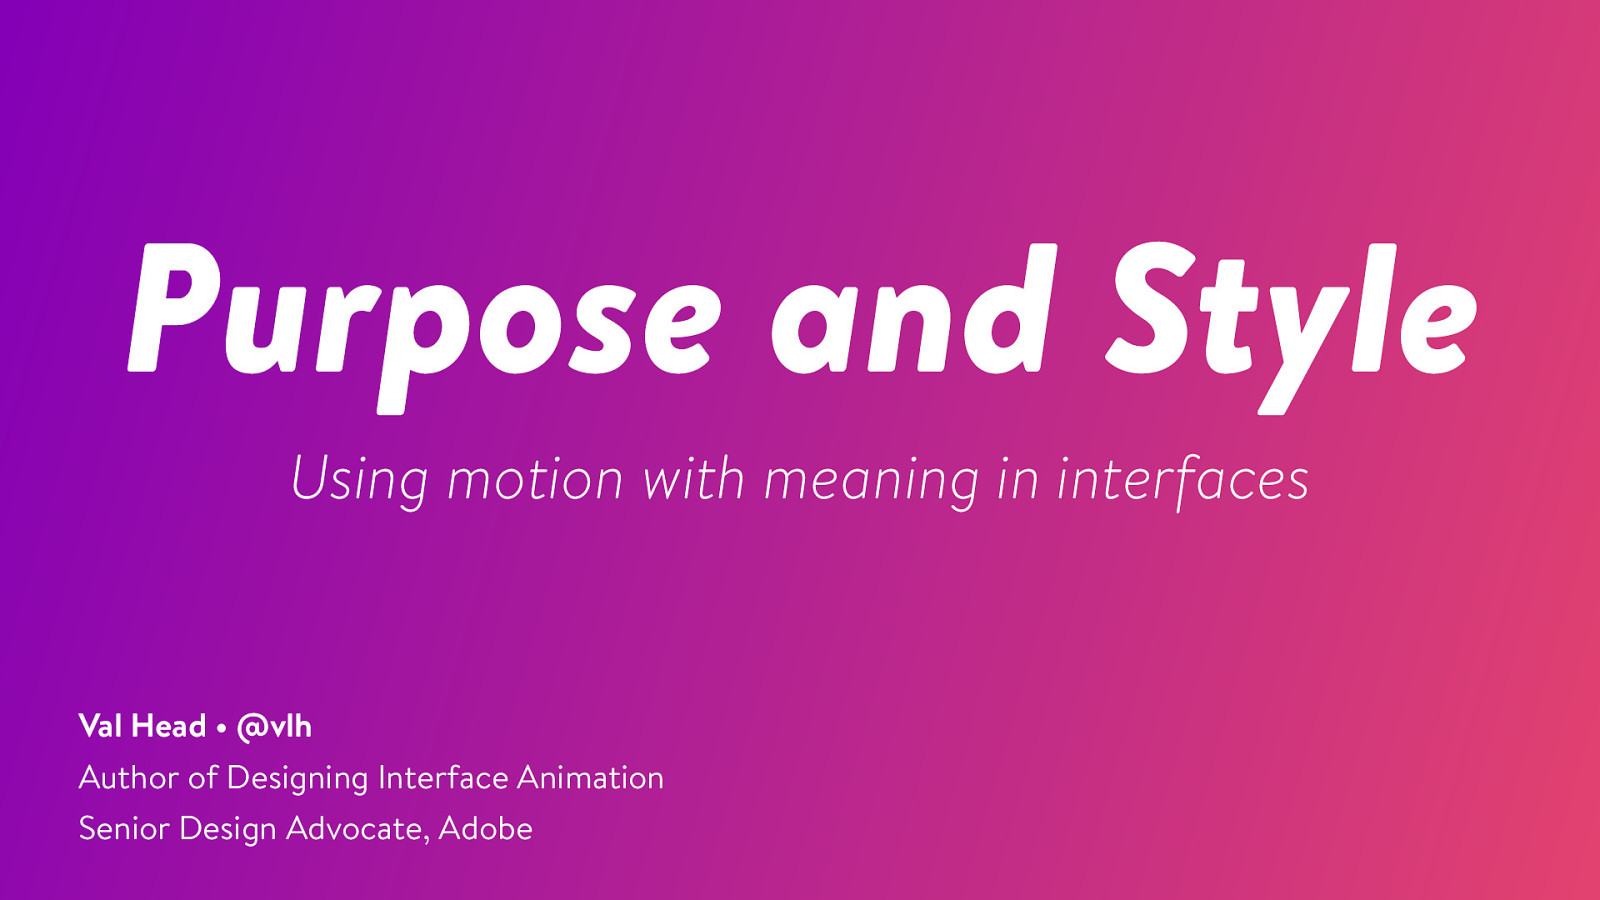 Purpose and Style: Using motion with meaning in interfaces